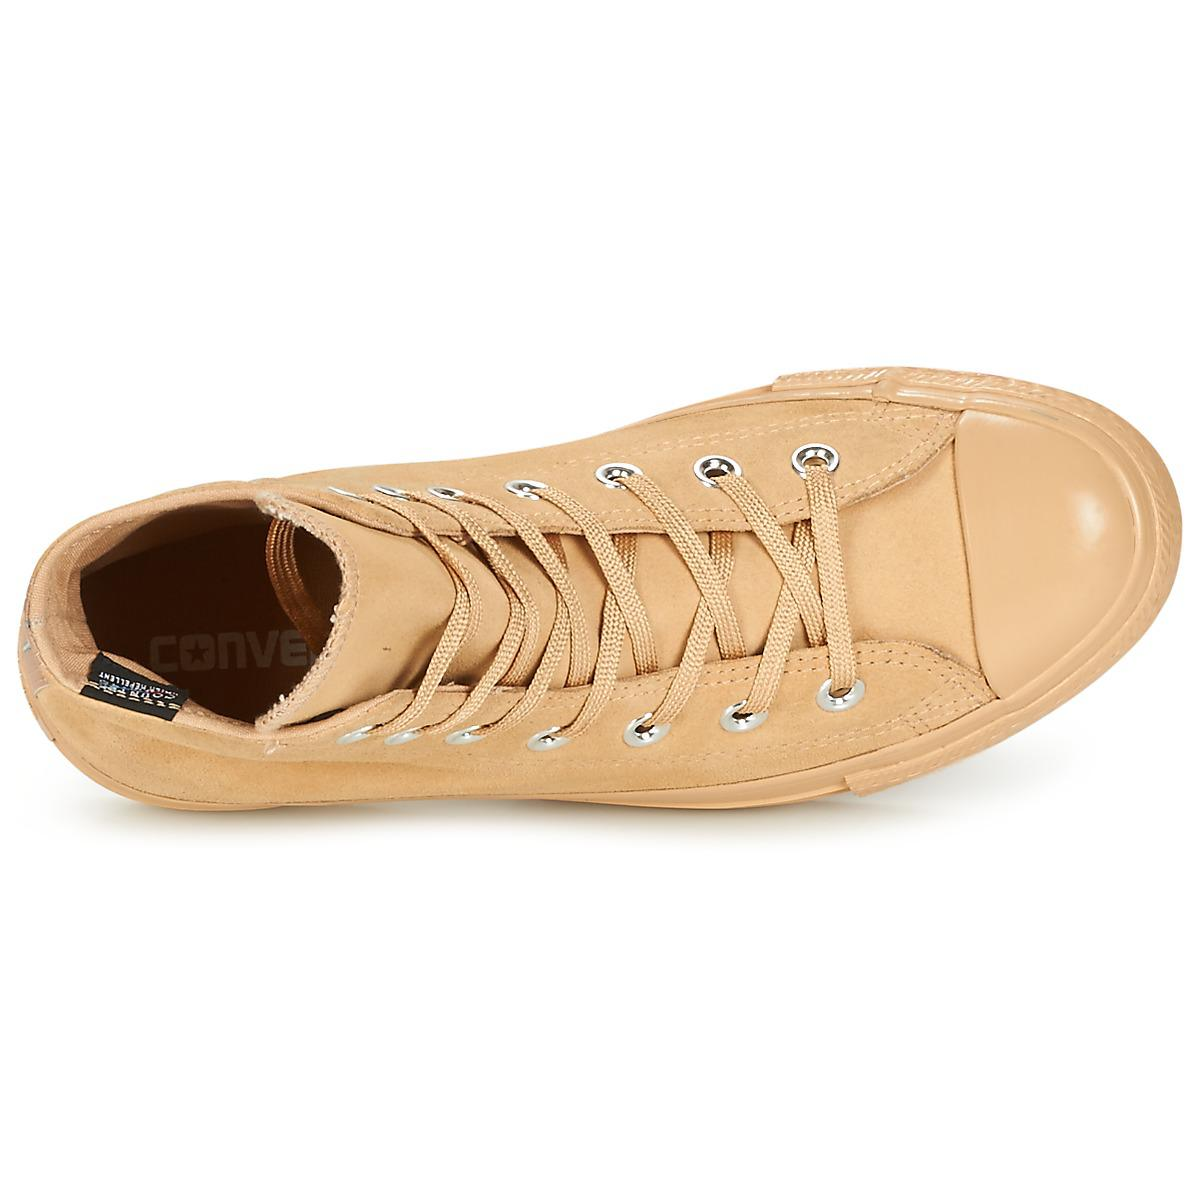 Converse Chuck Taylor All Star Mono Plush Suede Hi Light Fawn/light Fawn/ Women's Shoes (high-top Trainers) In Beige in Natural